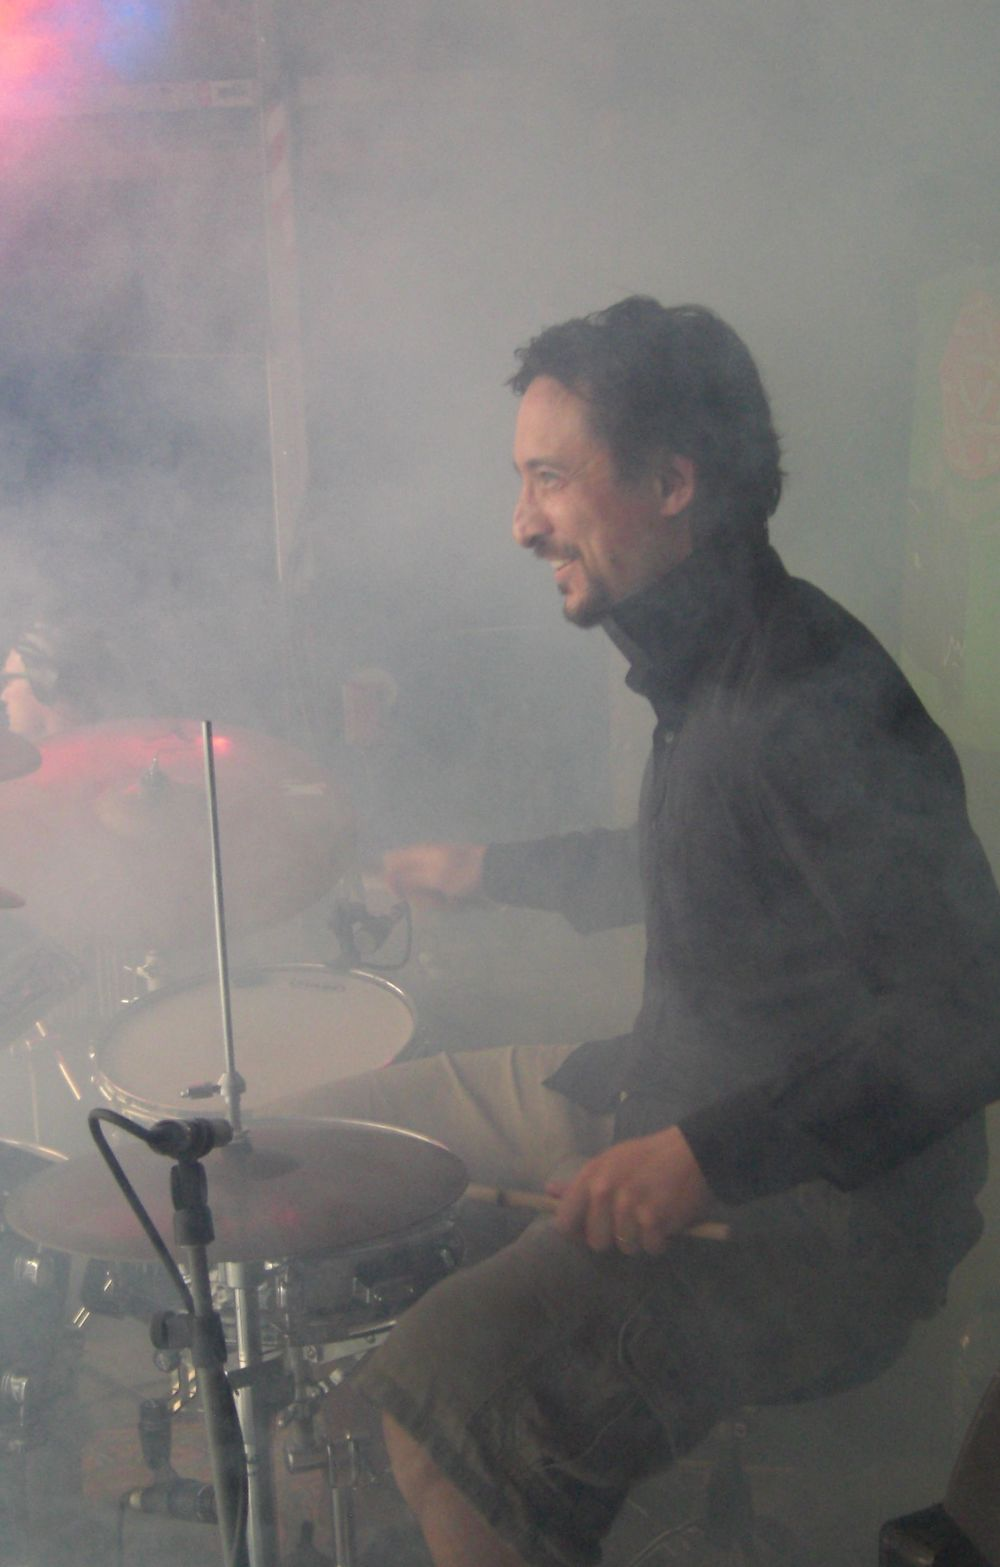 Performing with GOL at Knockengorroch Festival, 2009